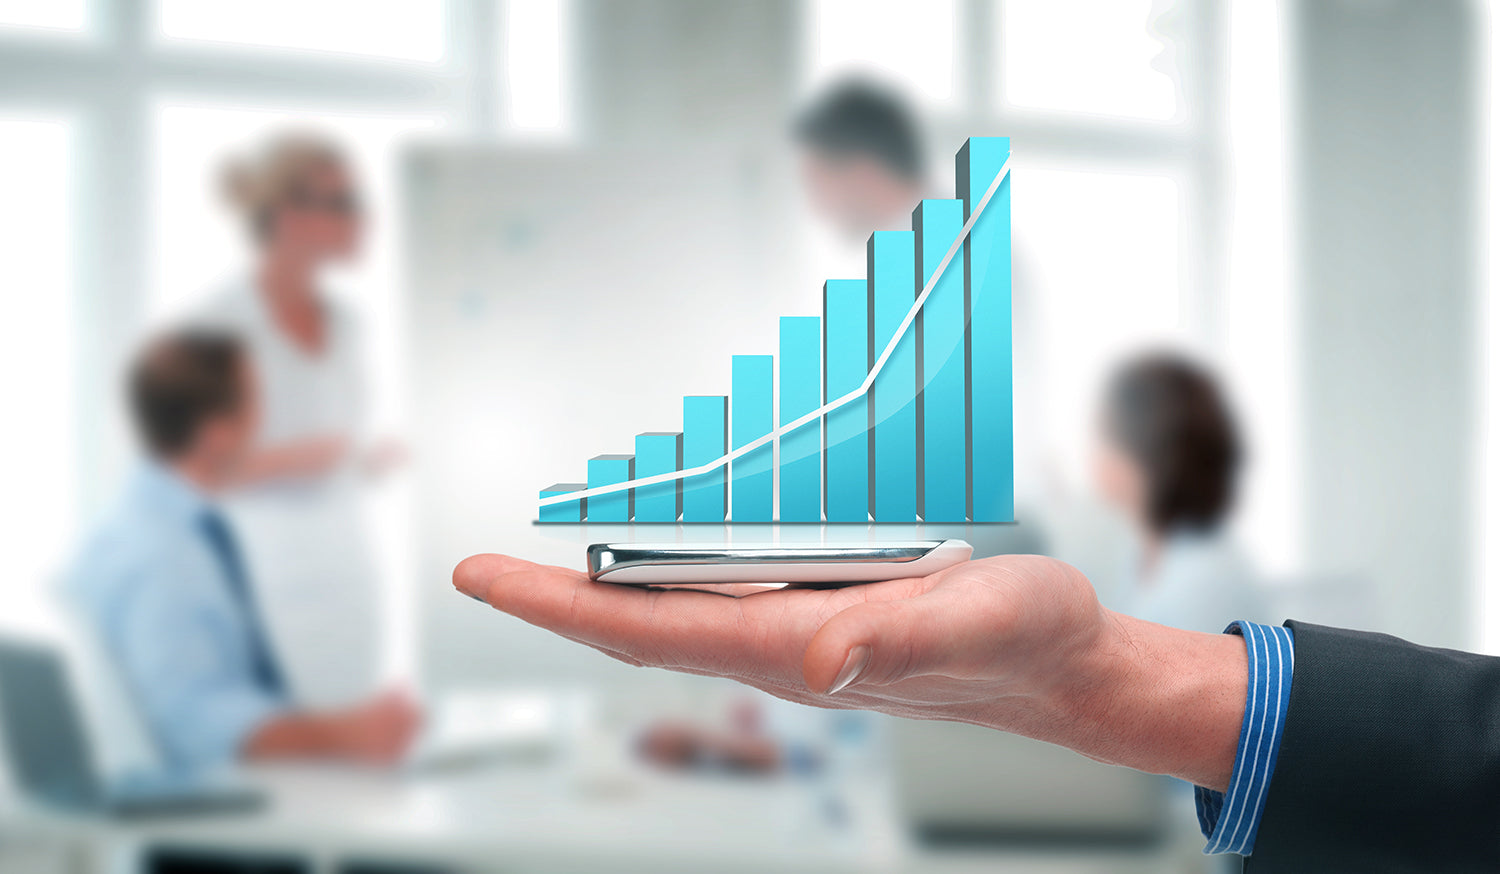 Increasing sales growth chart on a smartphone